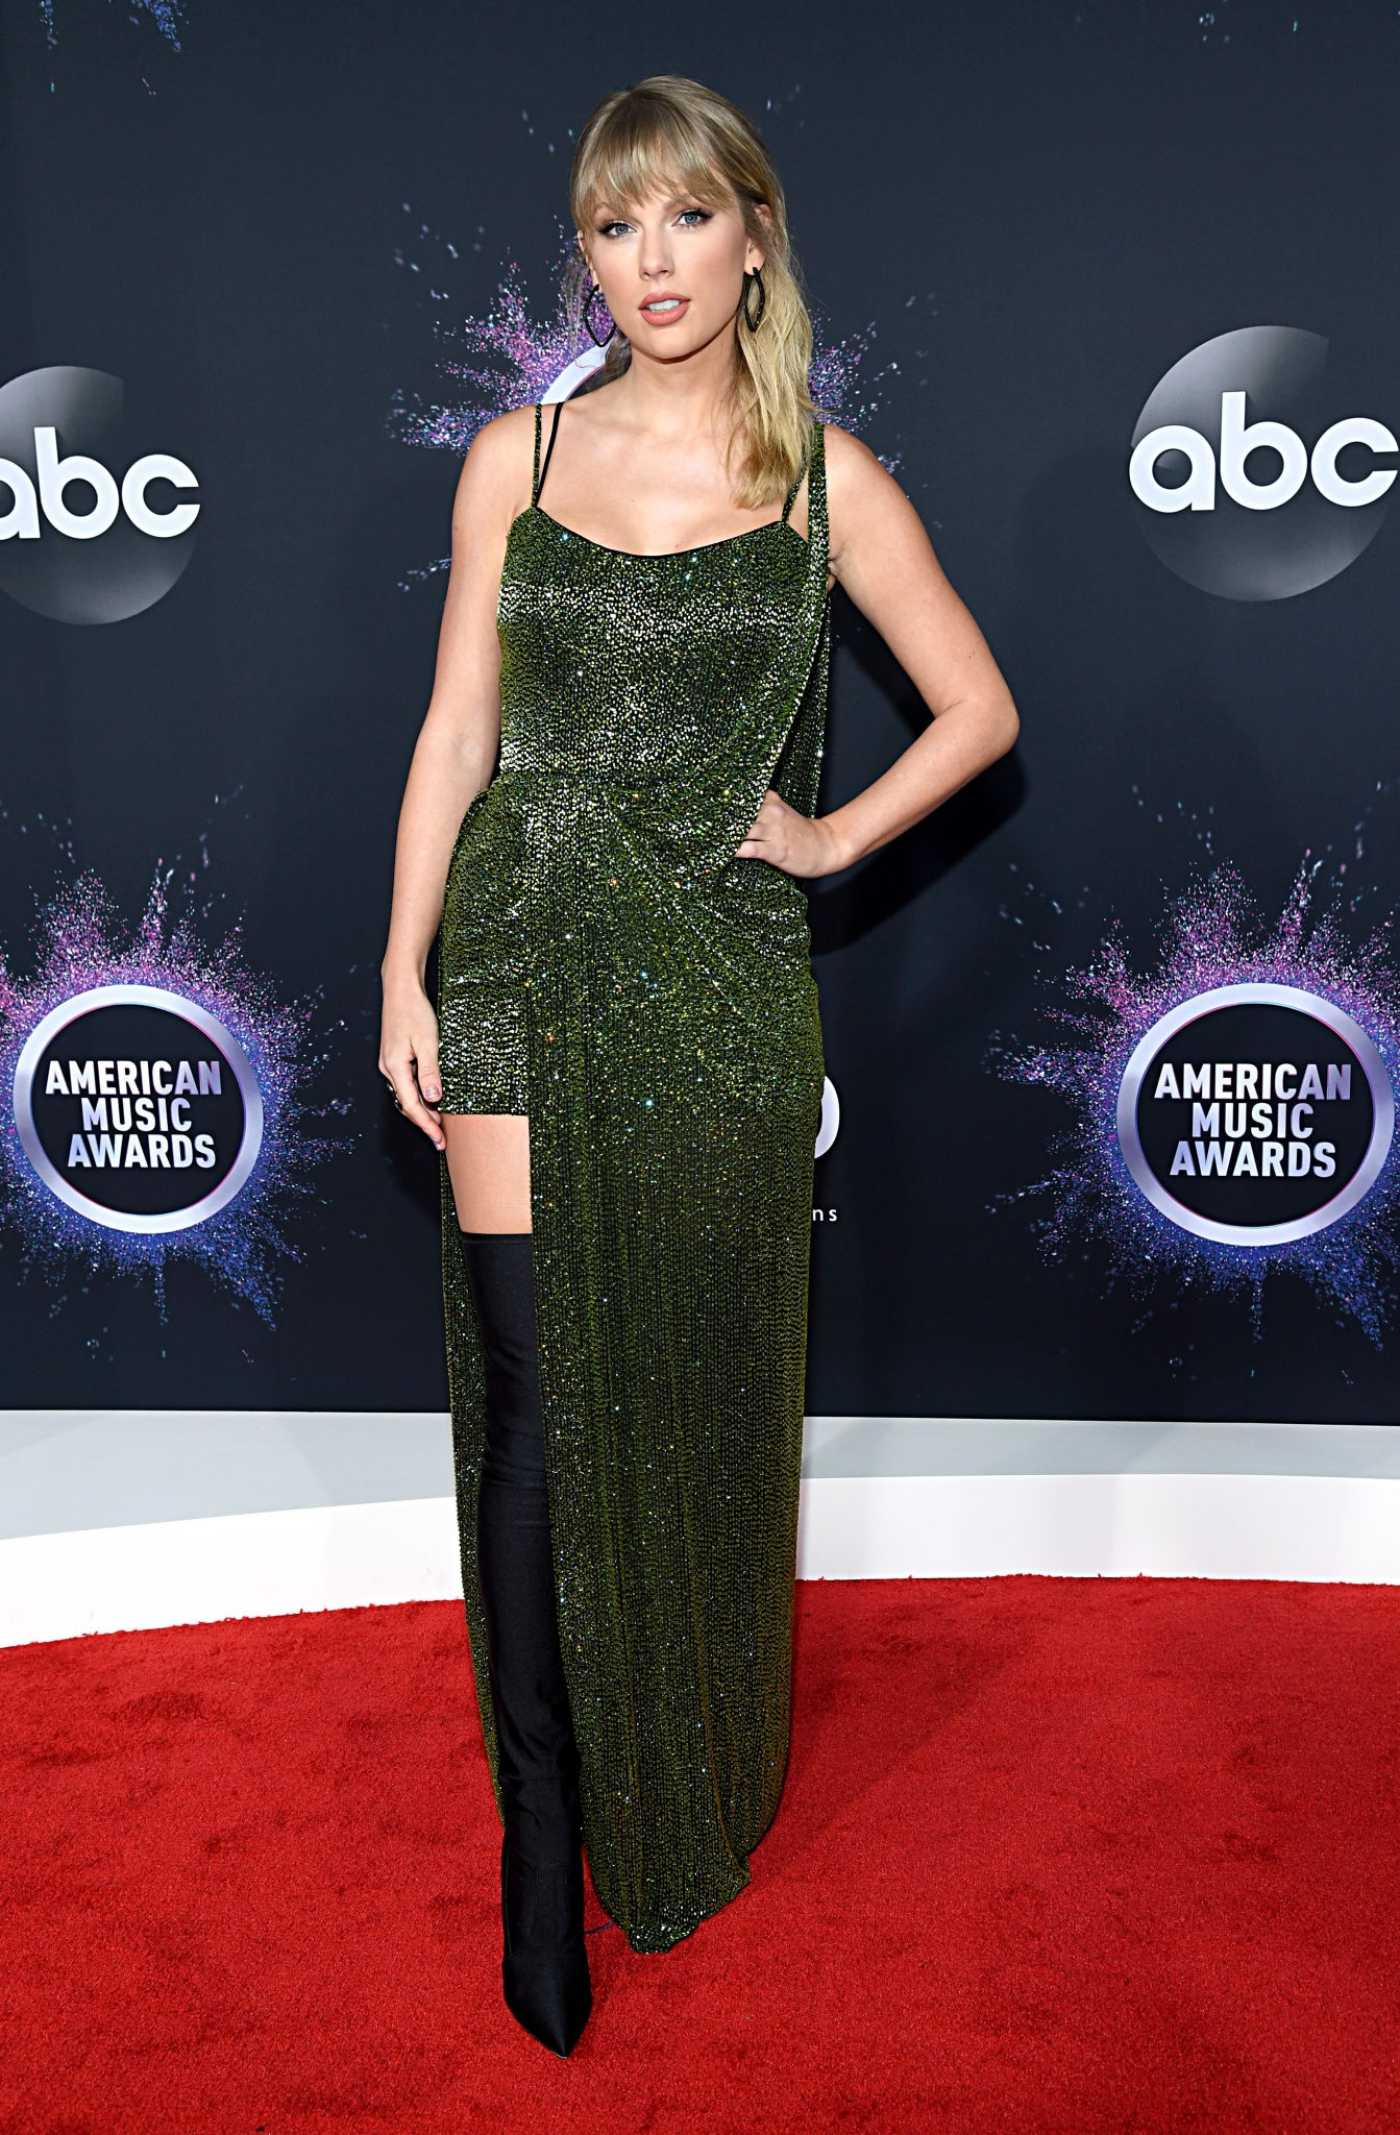 Taylor Swift Attends the 2019 American Music Awards at Microsoft Theater in Los Angeles 11/24/2019